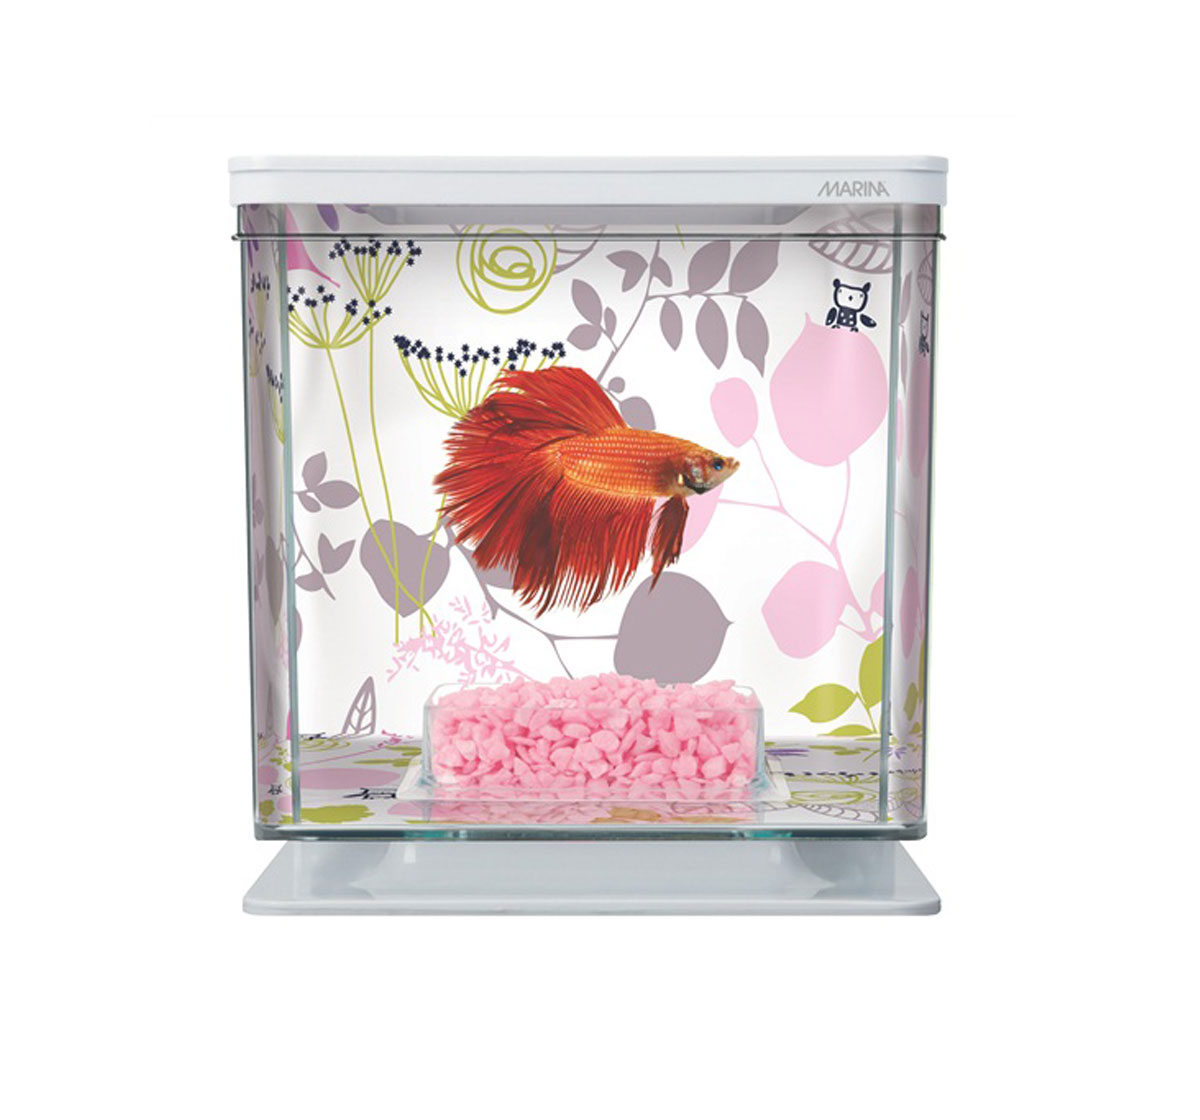 Betta fish tanks online india betta aquarium starter kit for Aquarium fish online